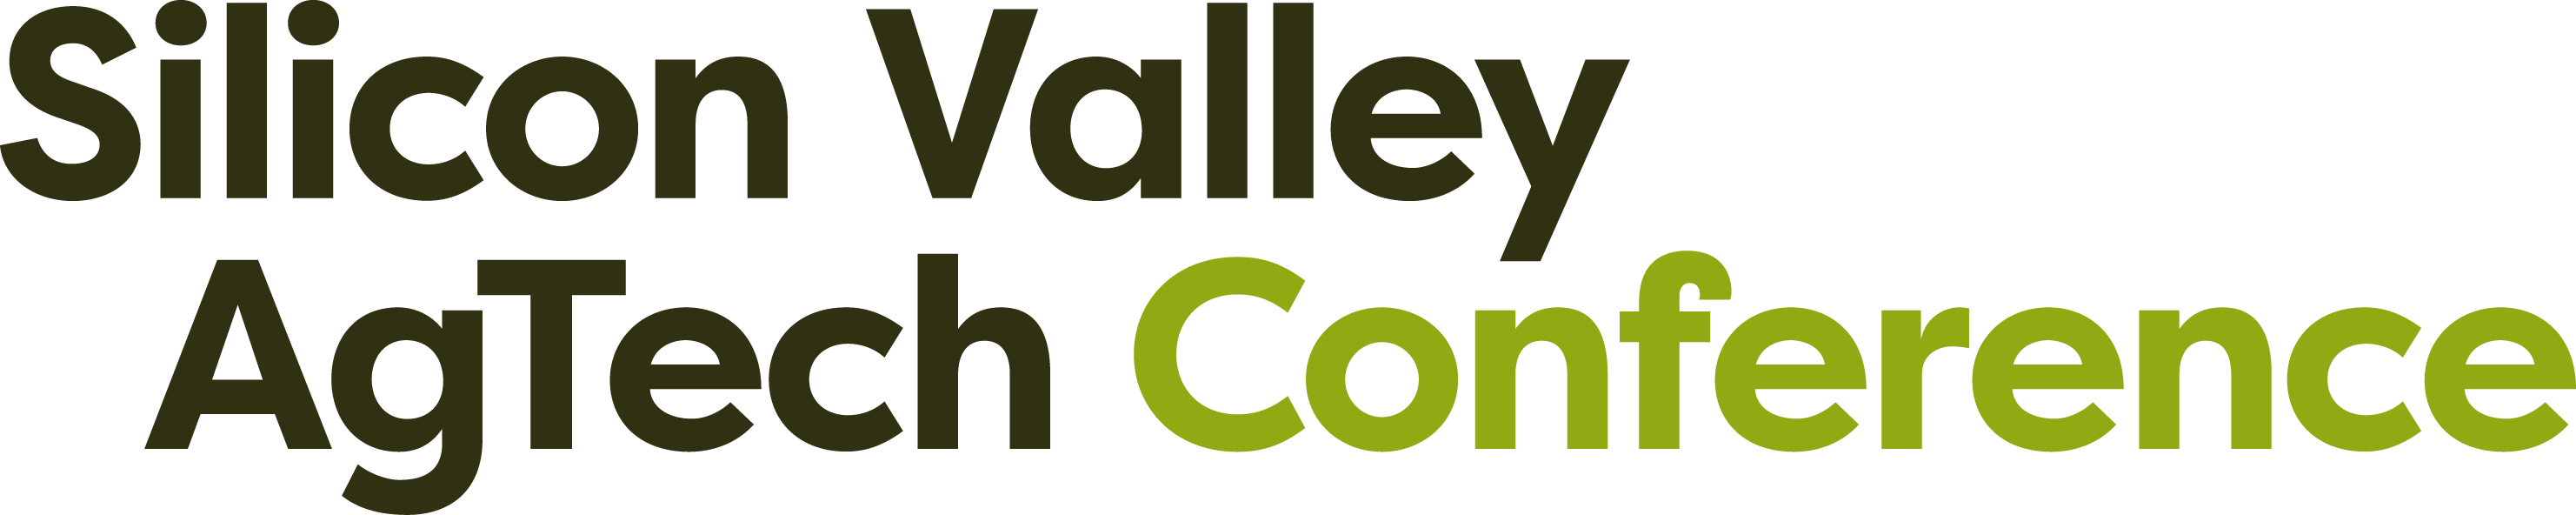 Attendees | Silicon Valley AgTech Conference